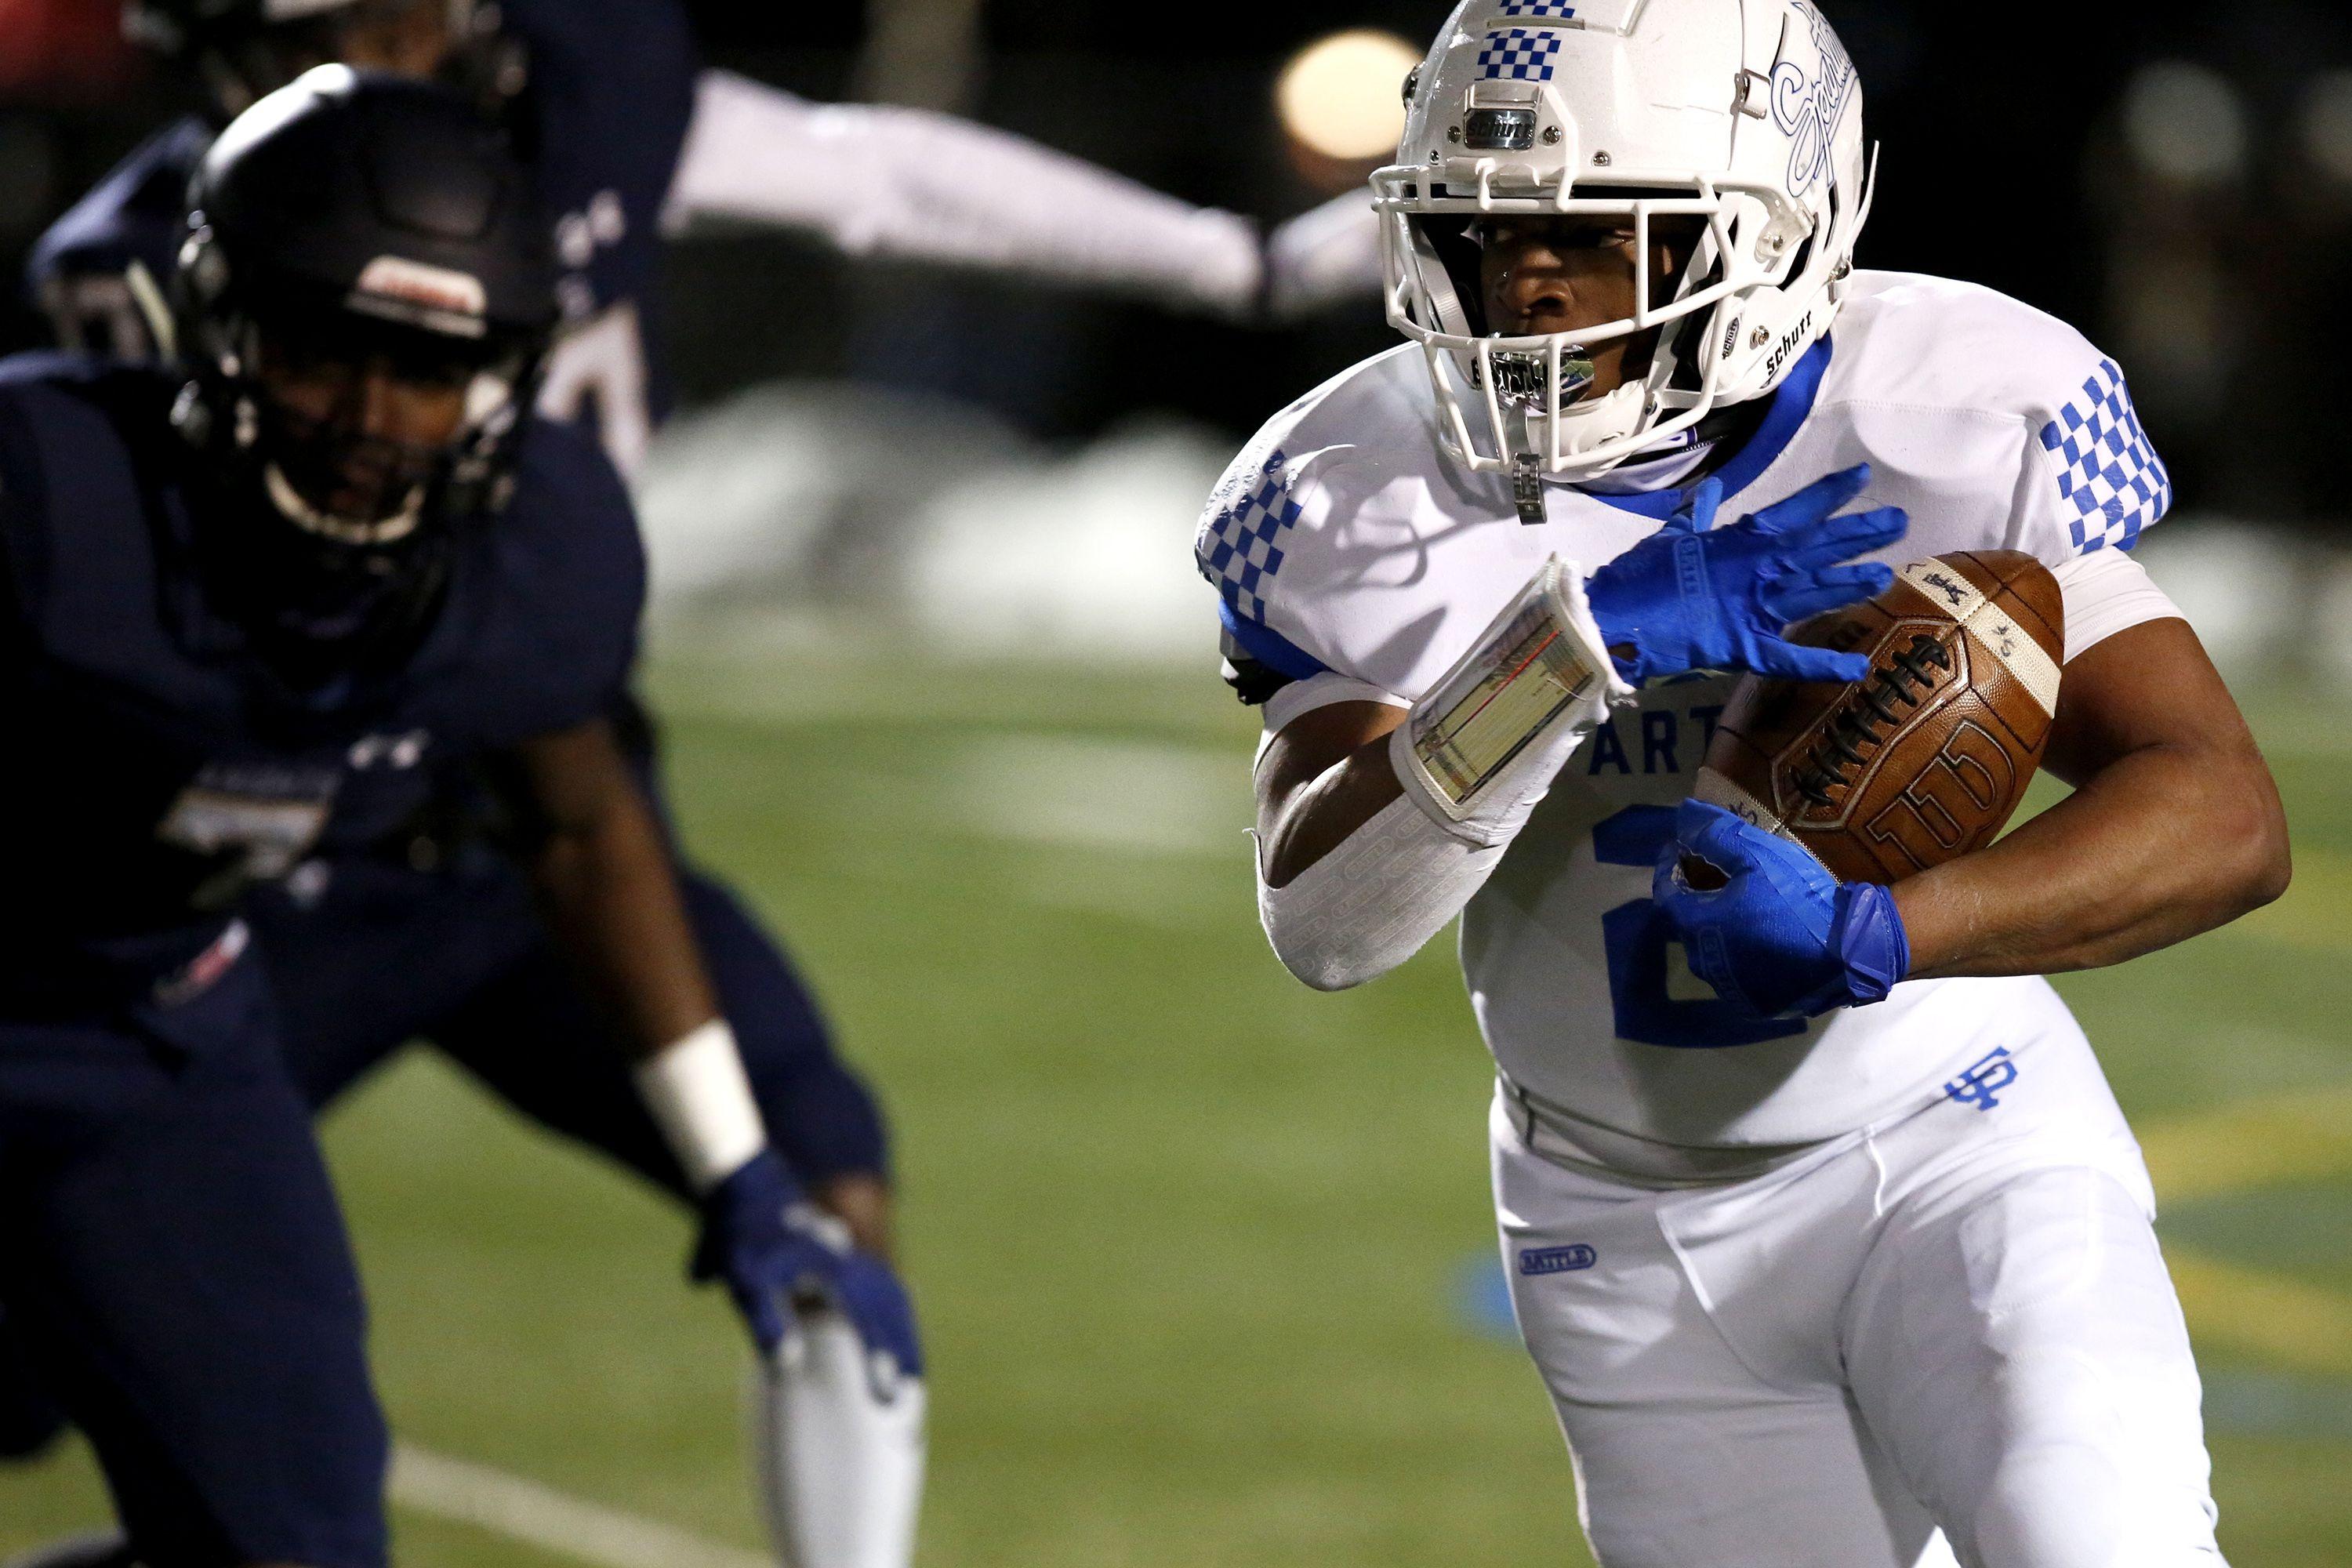 St. Francis' Terreon Roundy runs the ball during a Week 1 game against IC Catholic.